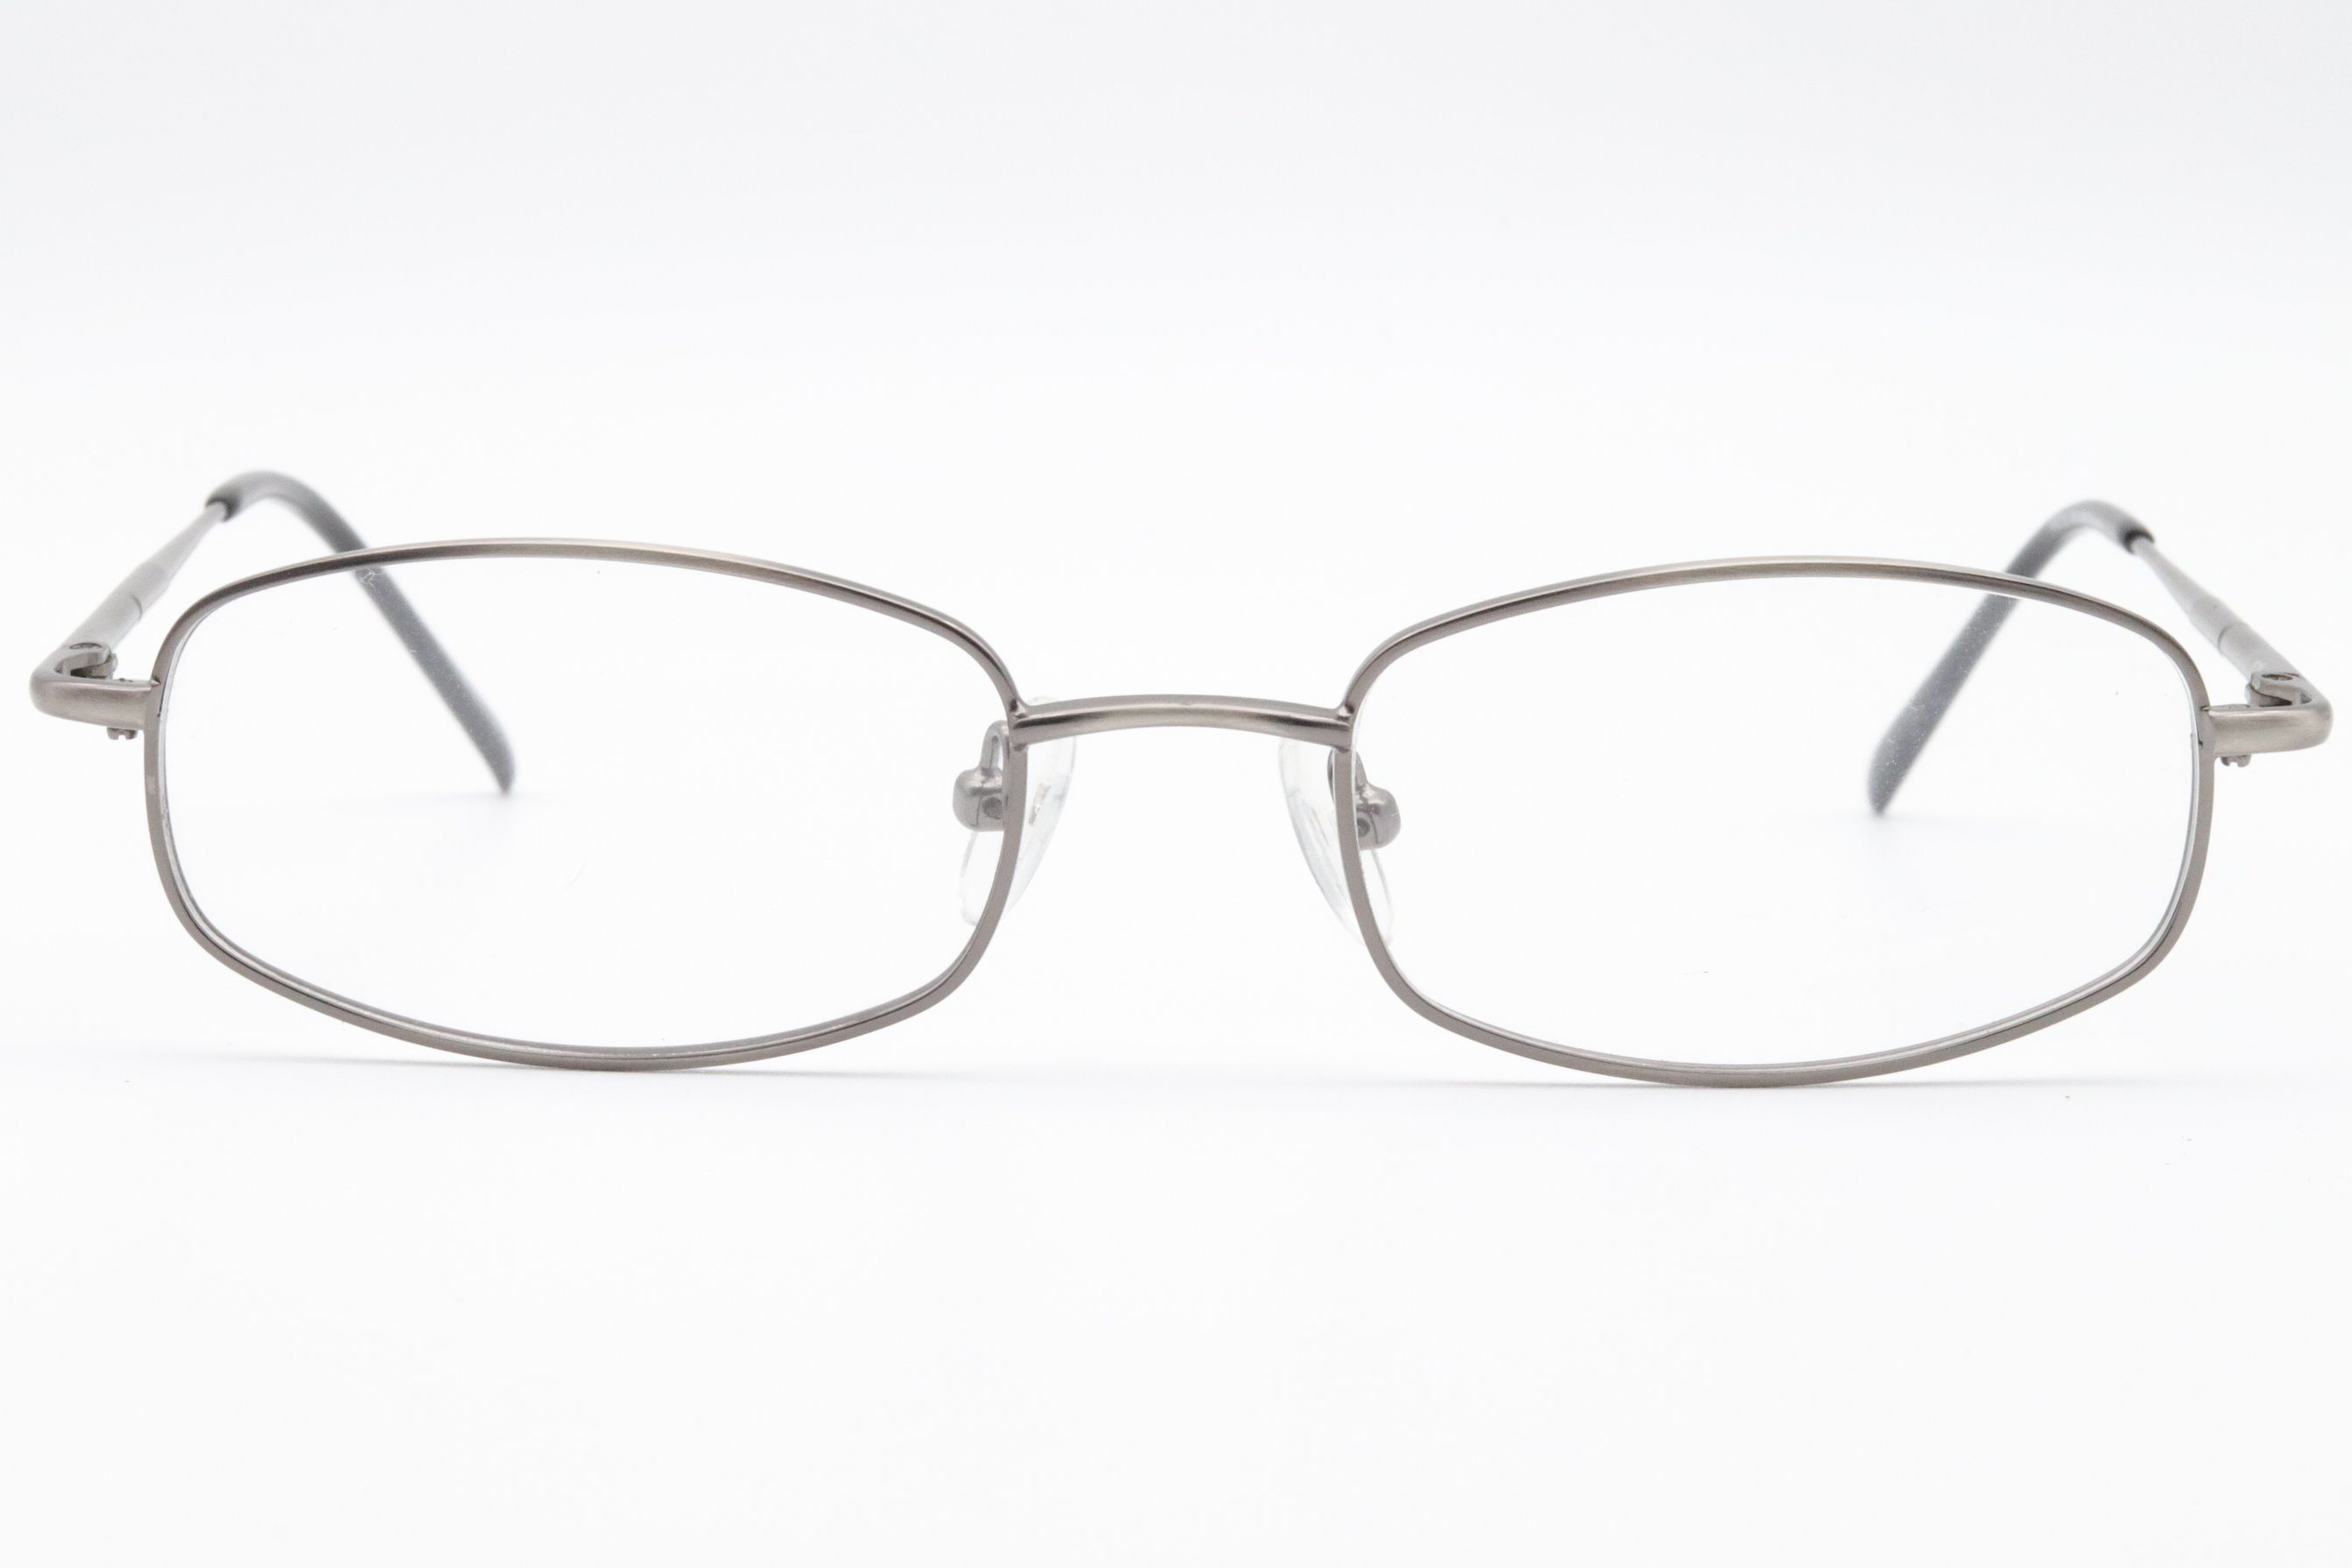 China Classic and Fashion Flexible Metal Optical Frames Eyeglasses ...